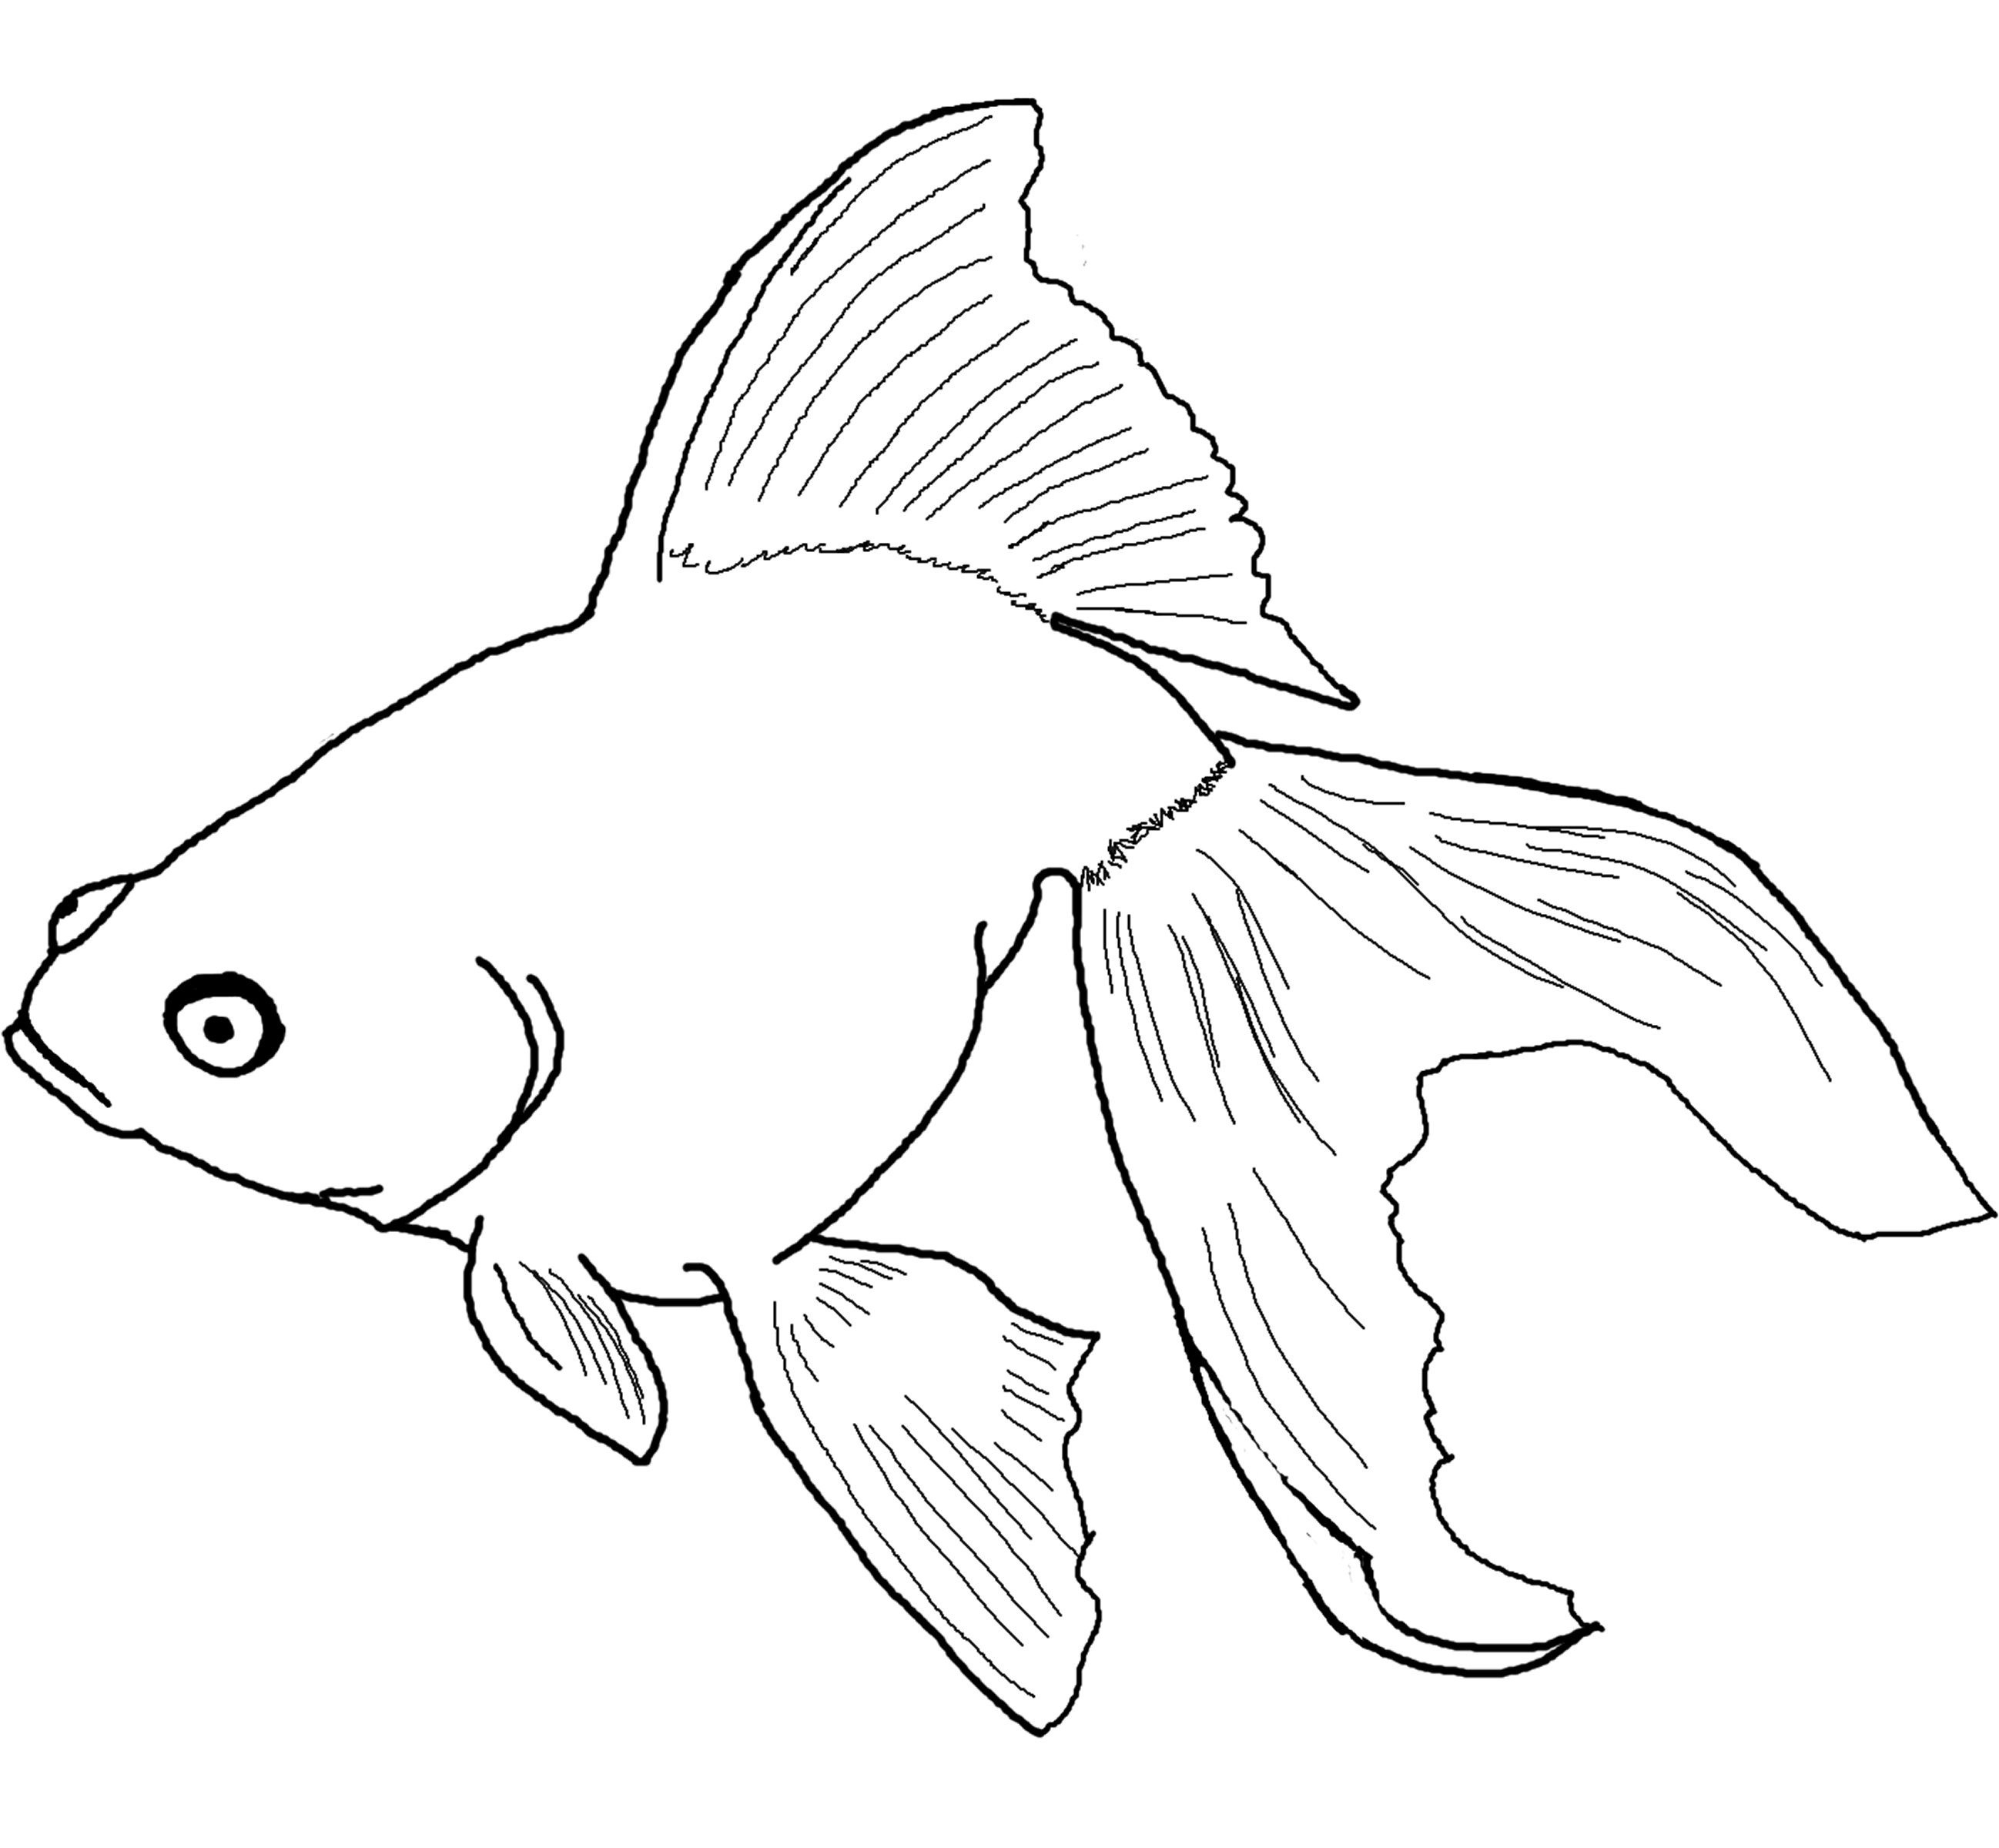 Goldfish Coloring Page Gold Fish 2 Coloring Page Goldfish Coloring Page Topsailmultimedia